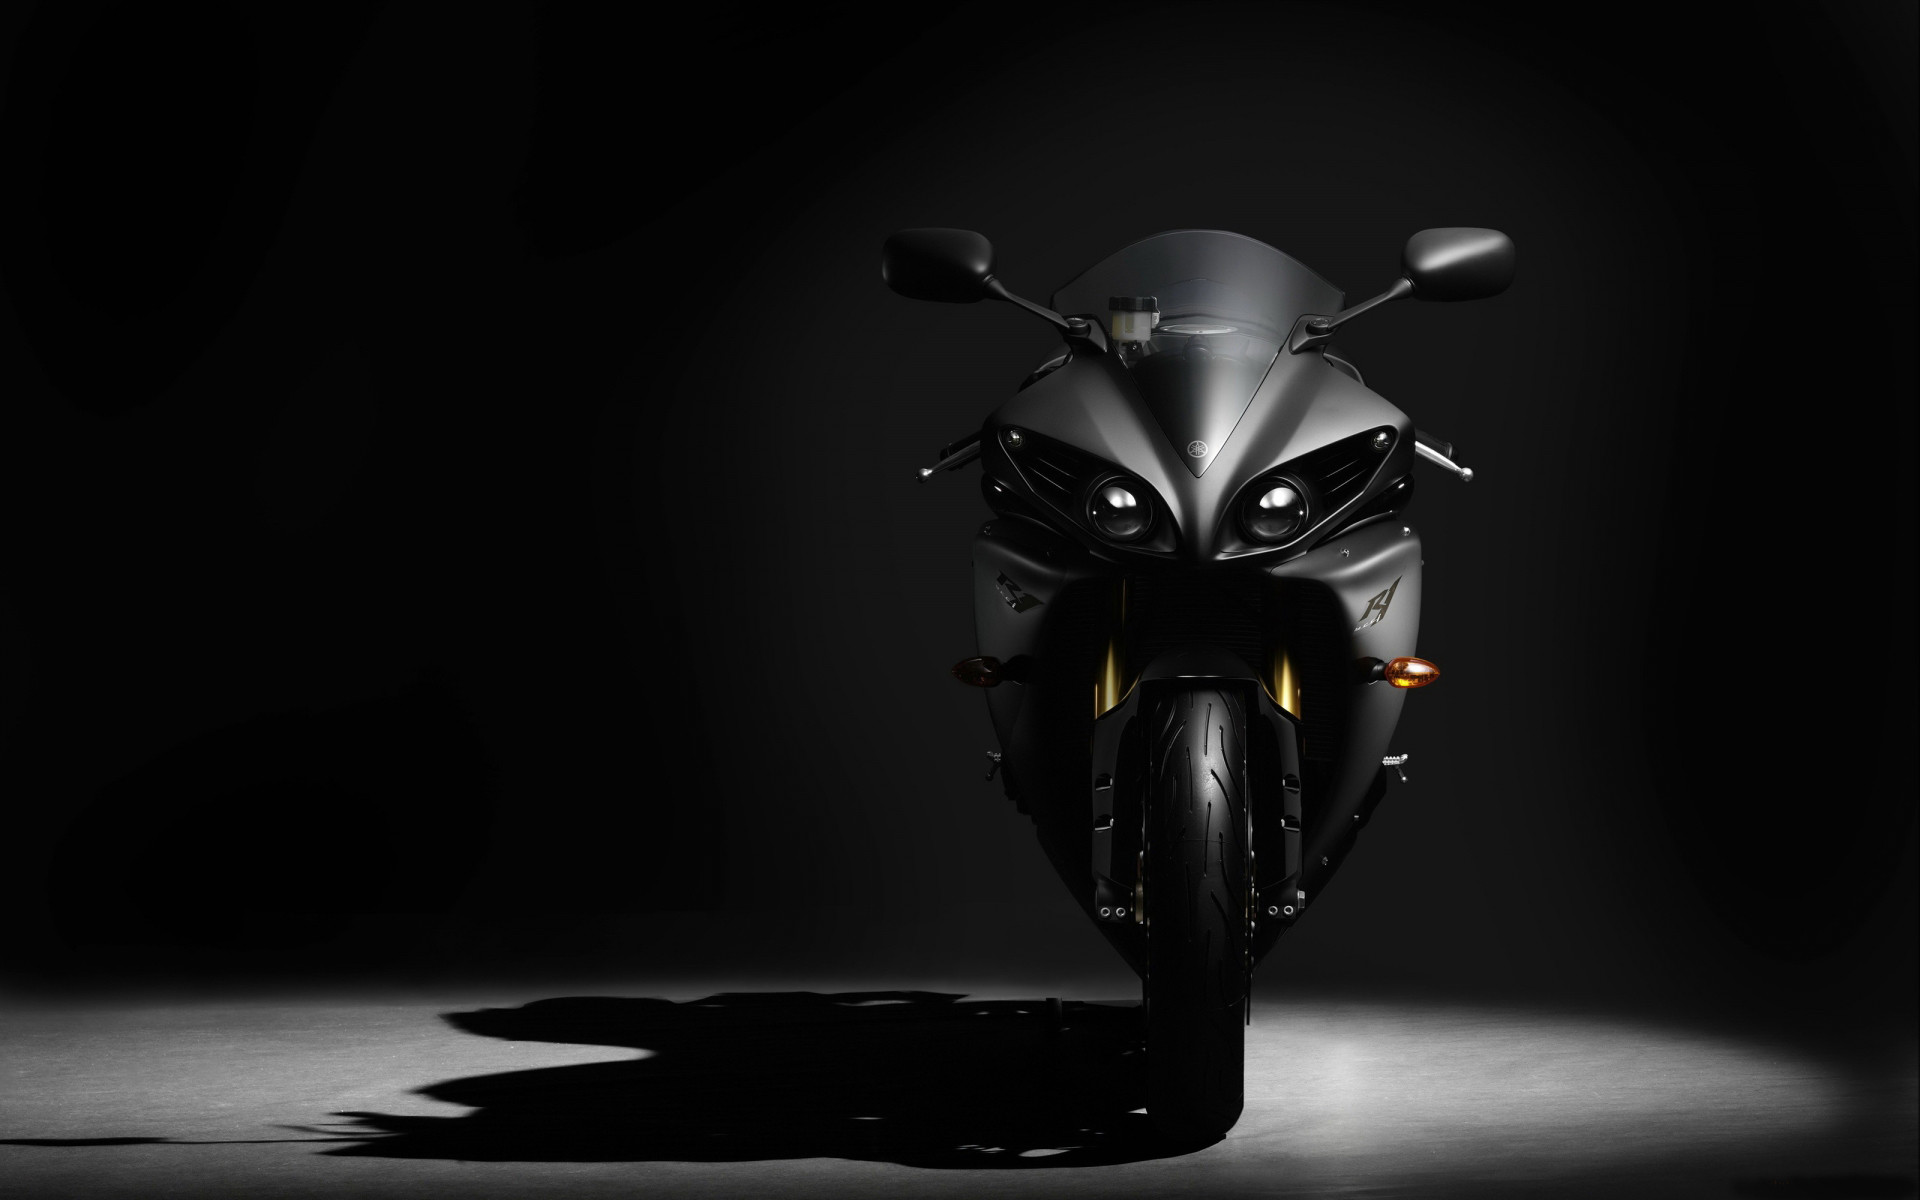 1920x1200 Cool Motorcycle Wallpapers Phone